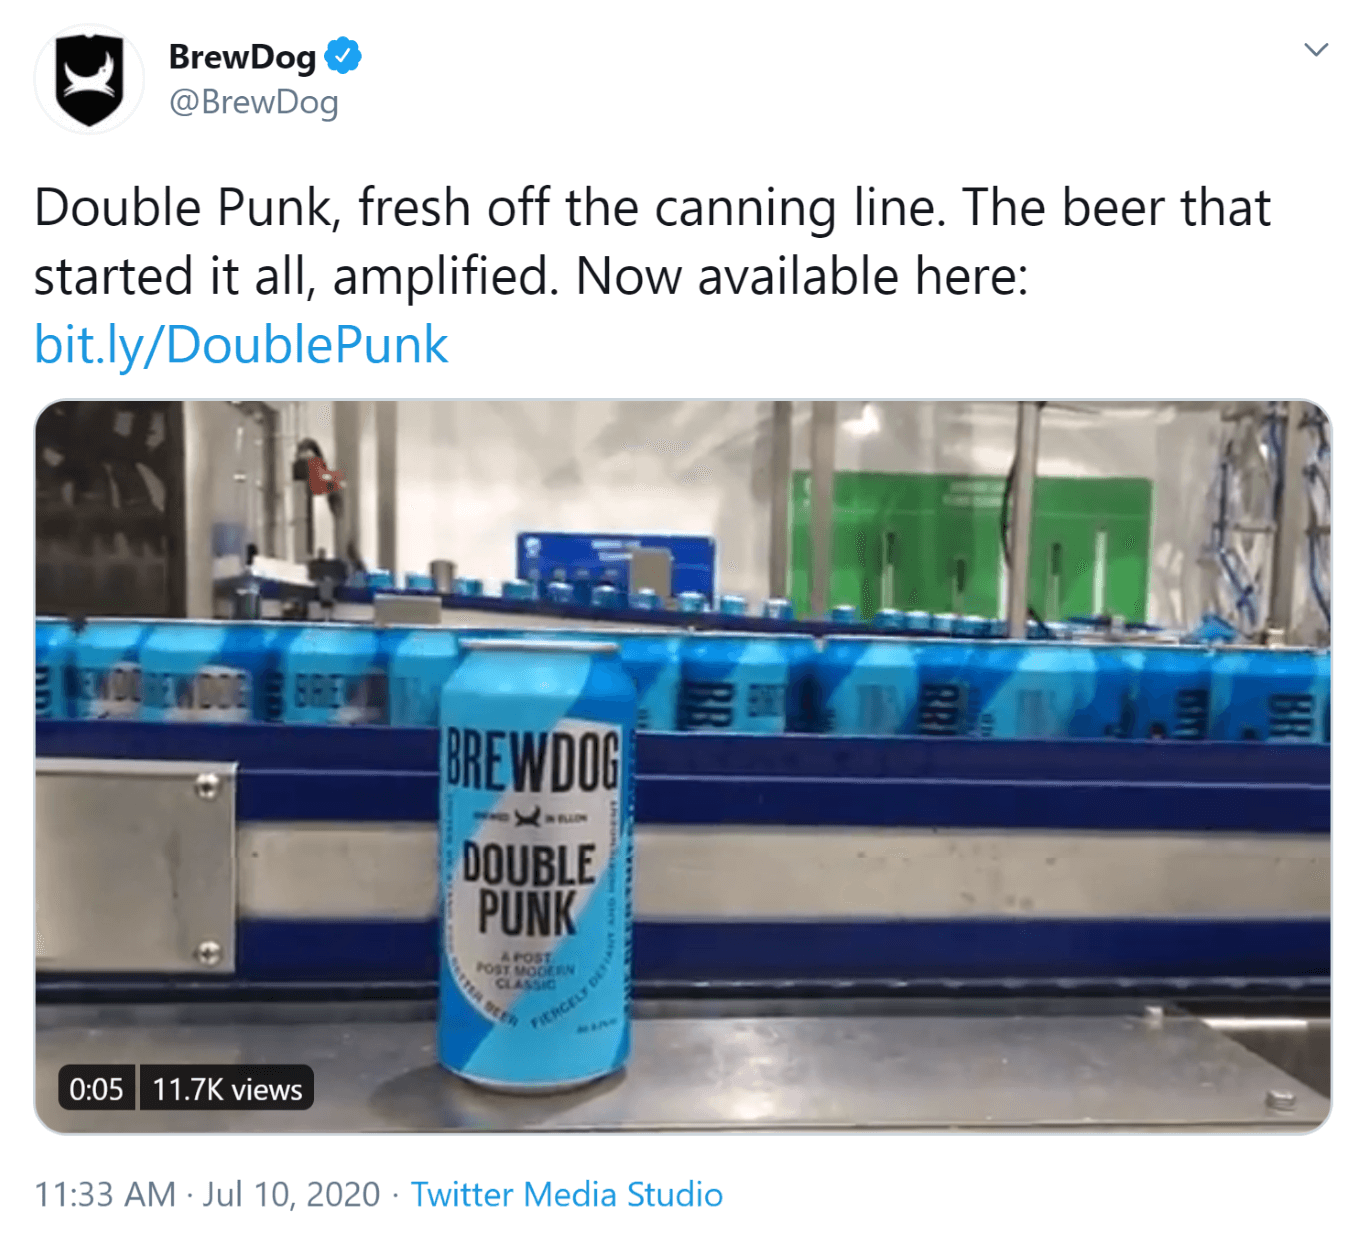 BrewDog - double punk